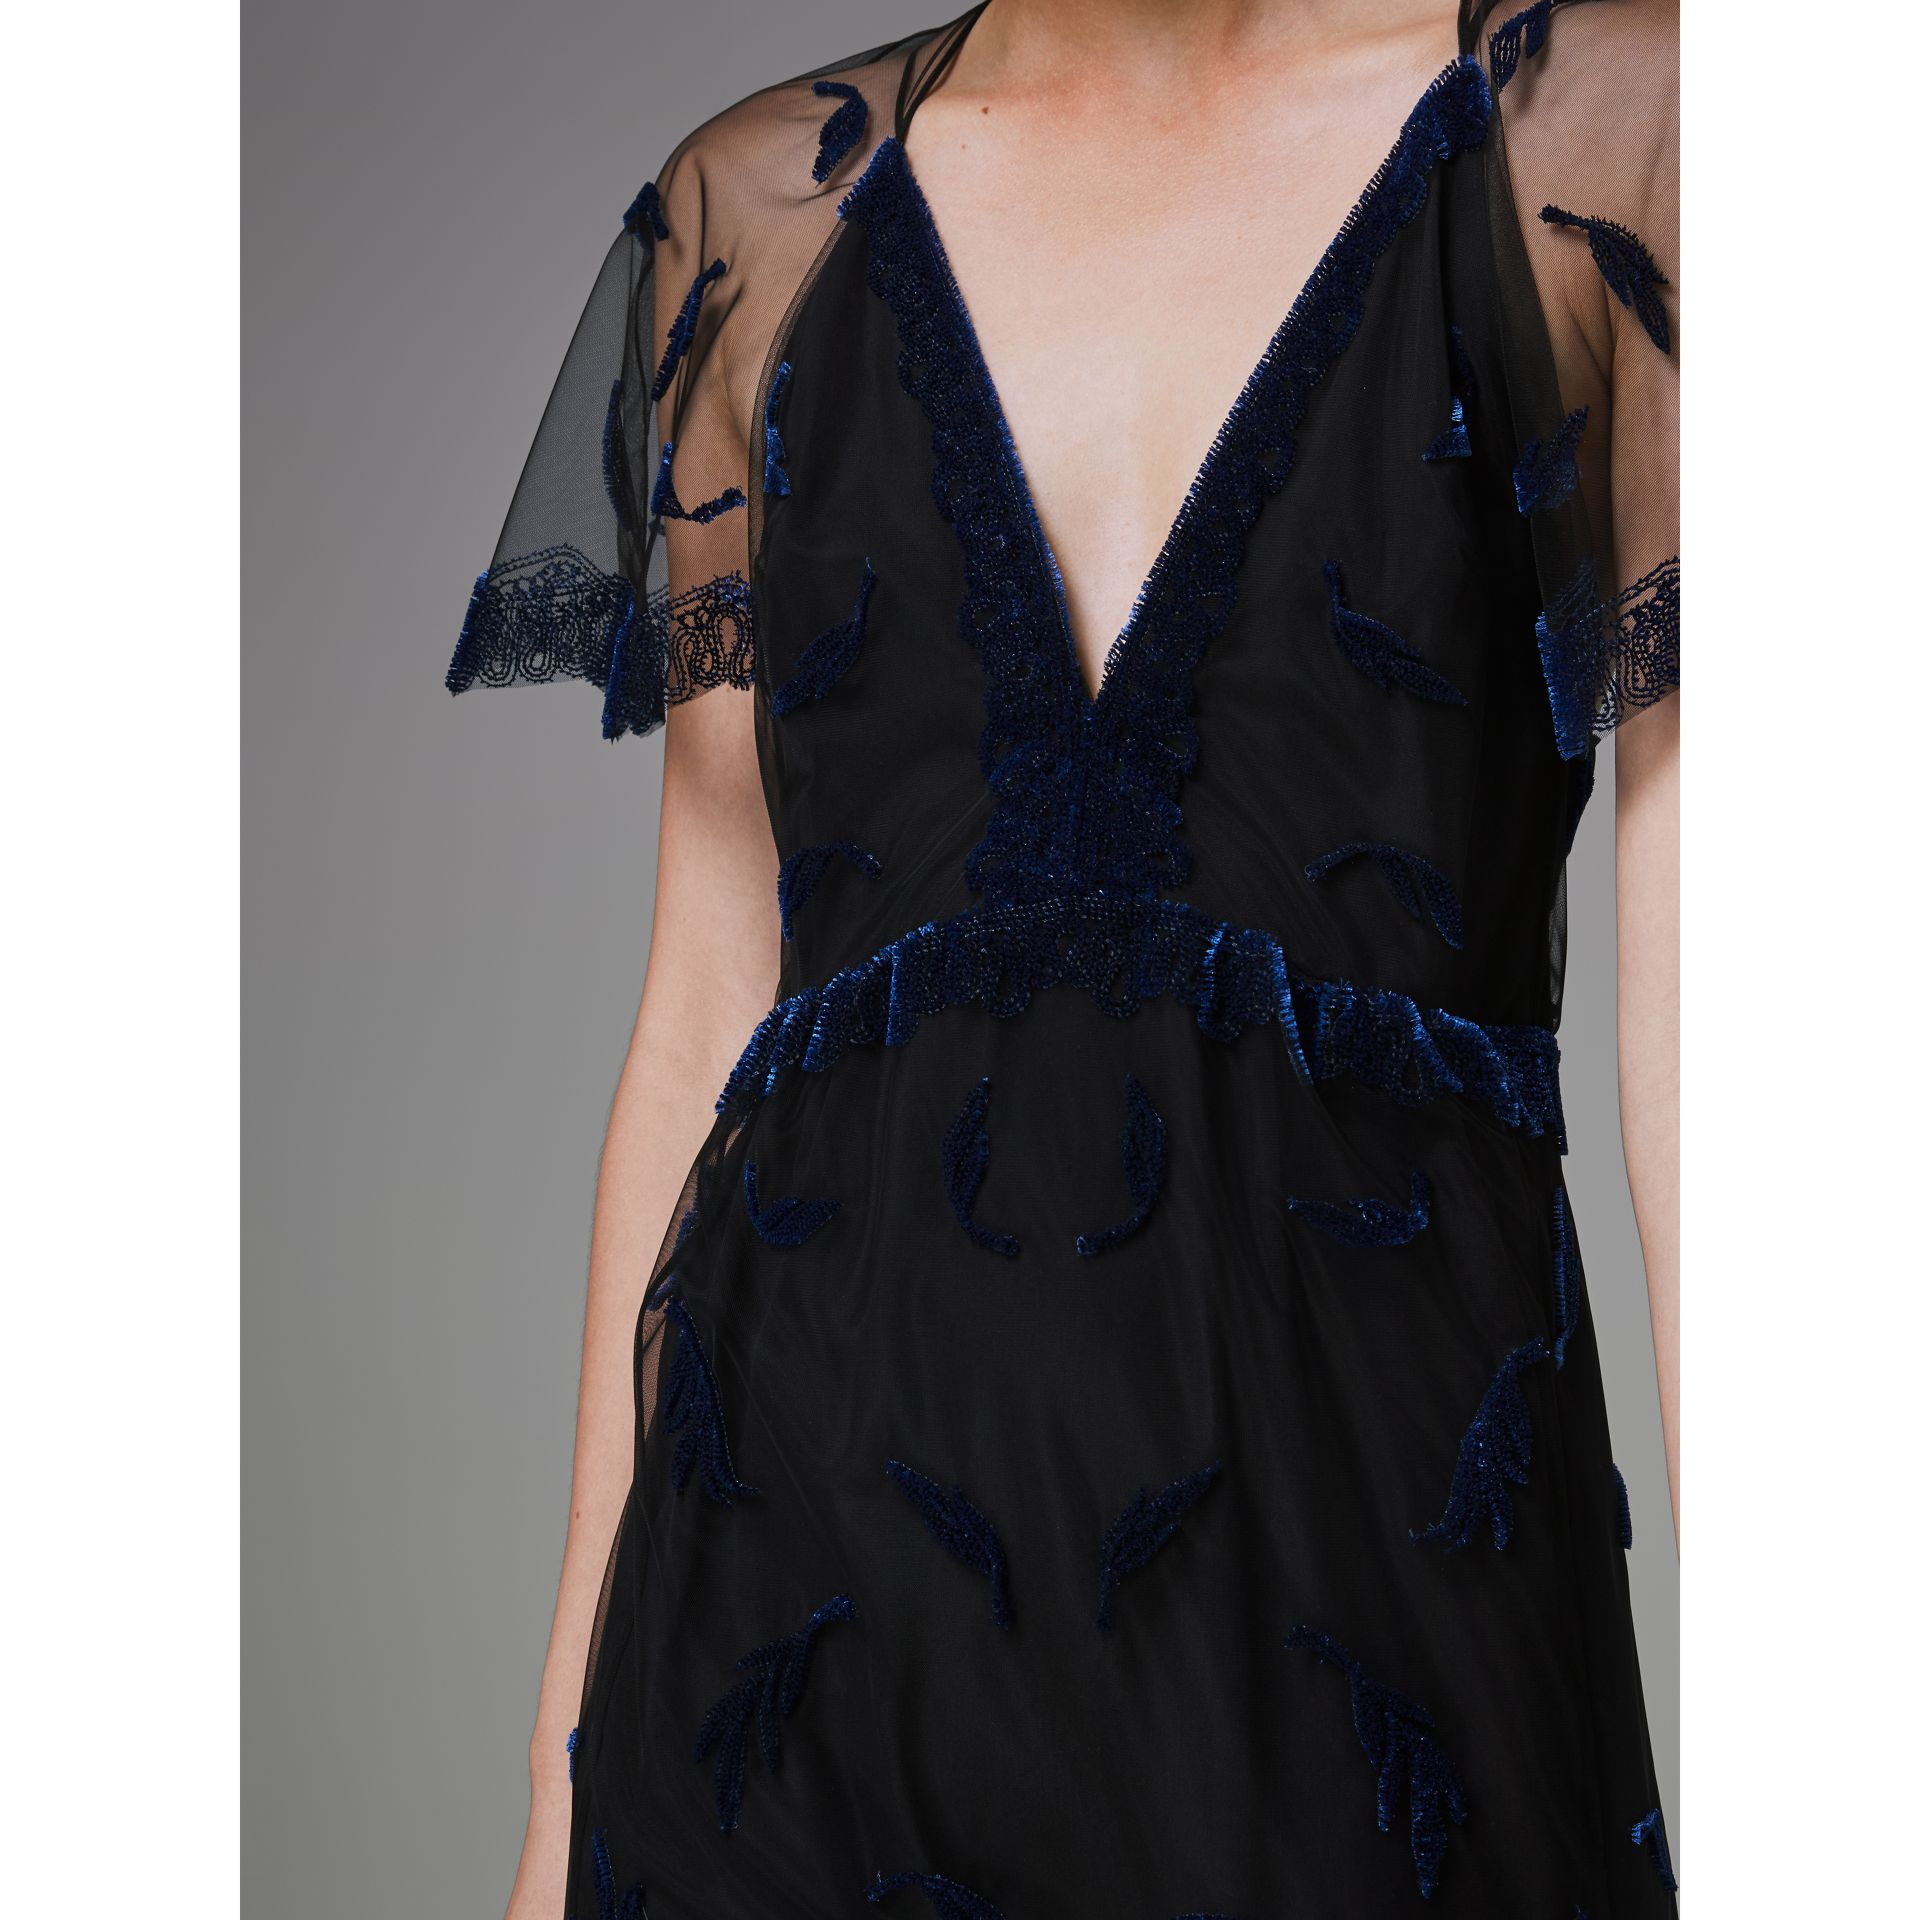 Velvet Leaf Cap-sleeve Gown in Black/blue - Women | Burberry - gallery image 1